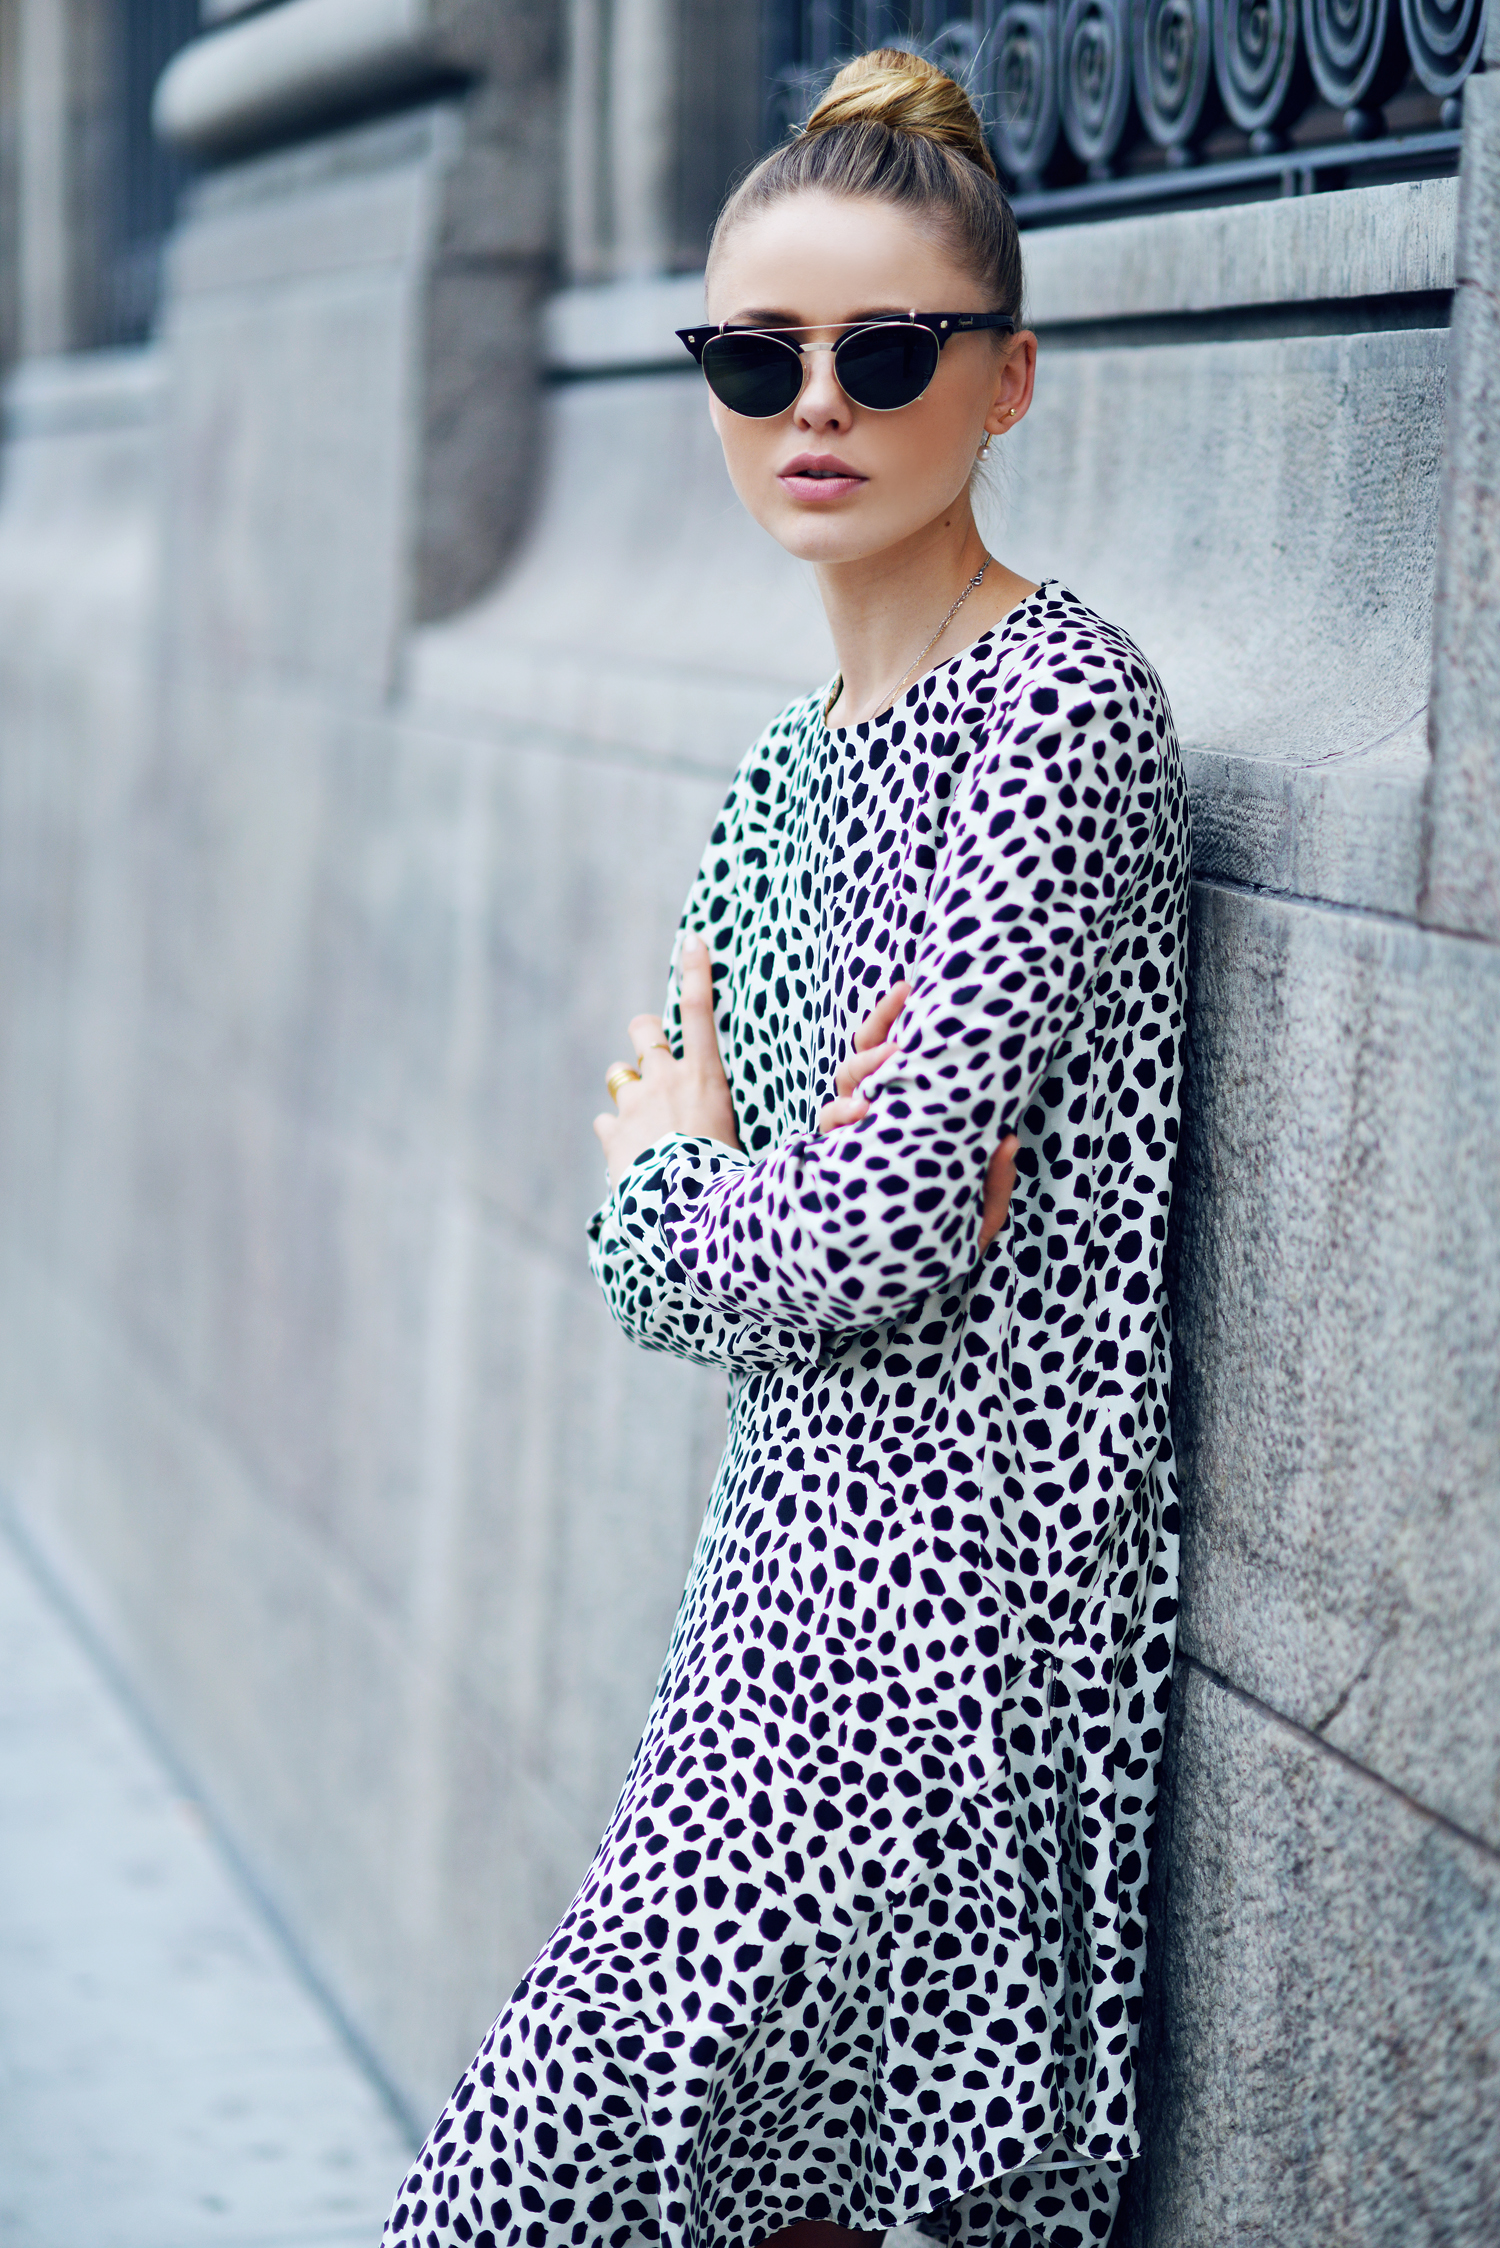 7e34246bf7 Kristina Bazan is wearing a leopard print dress from Chloe and sunglasses  from D Squared